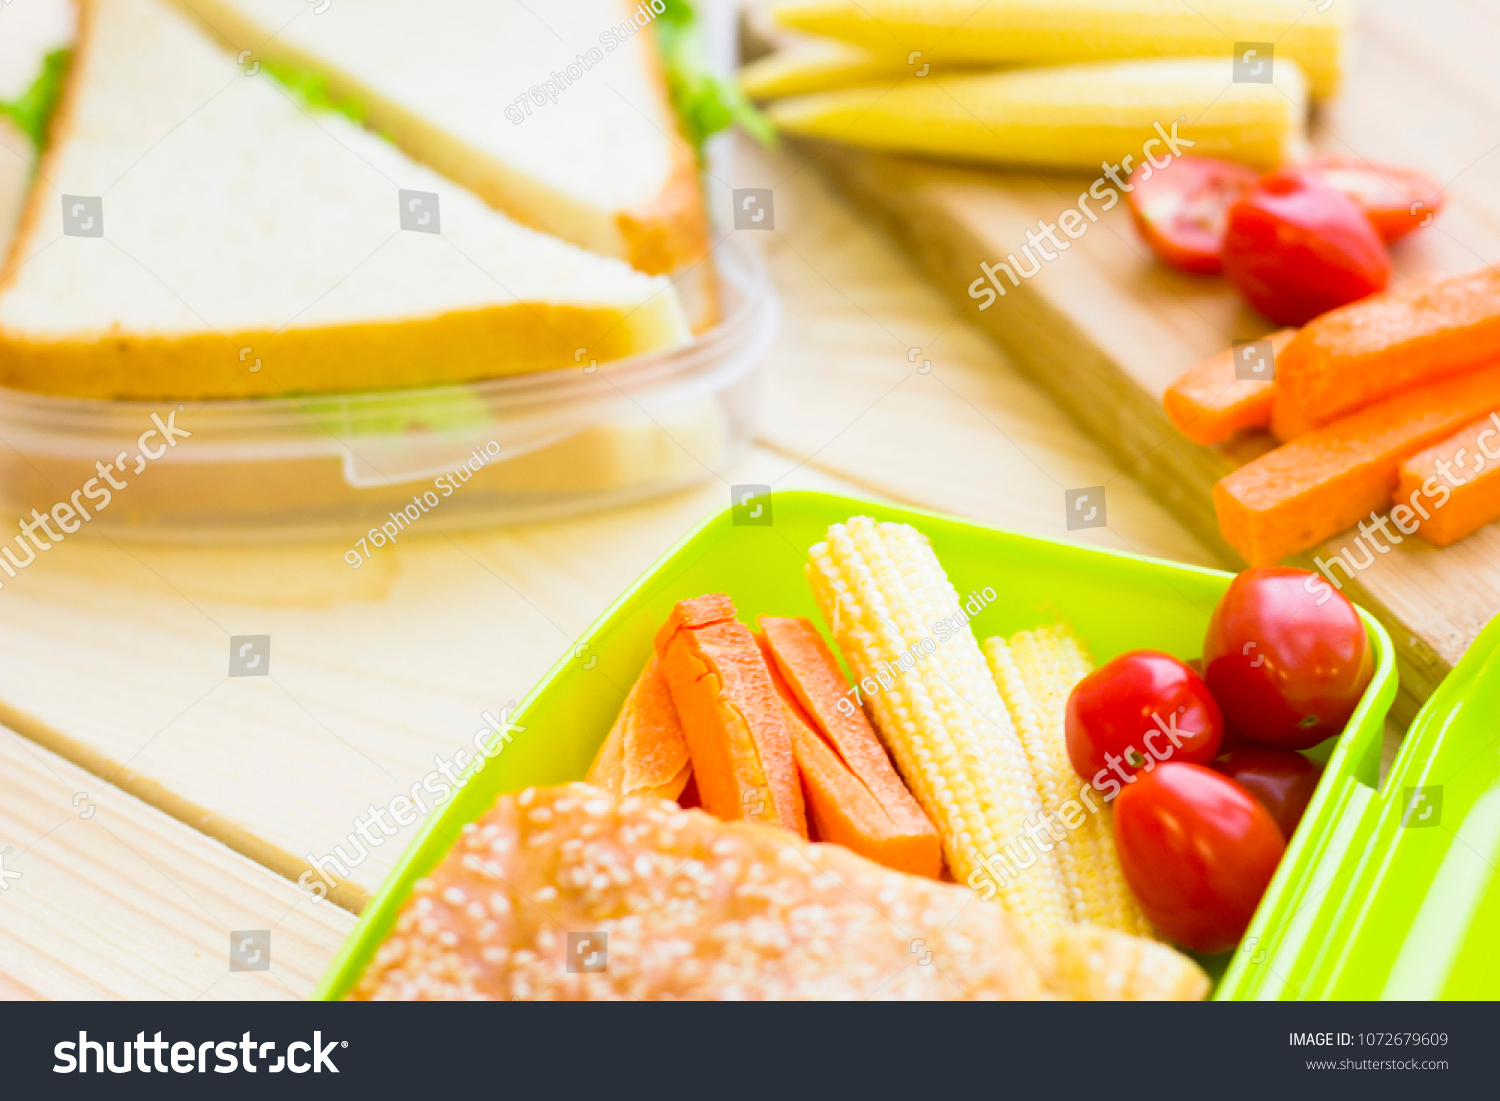 Lunch In A Box Healthy Lunch Box Stock Photo Edit Now 1072679609 Shutterstock